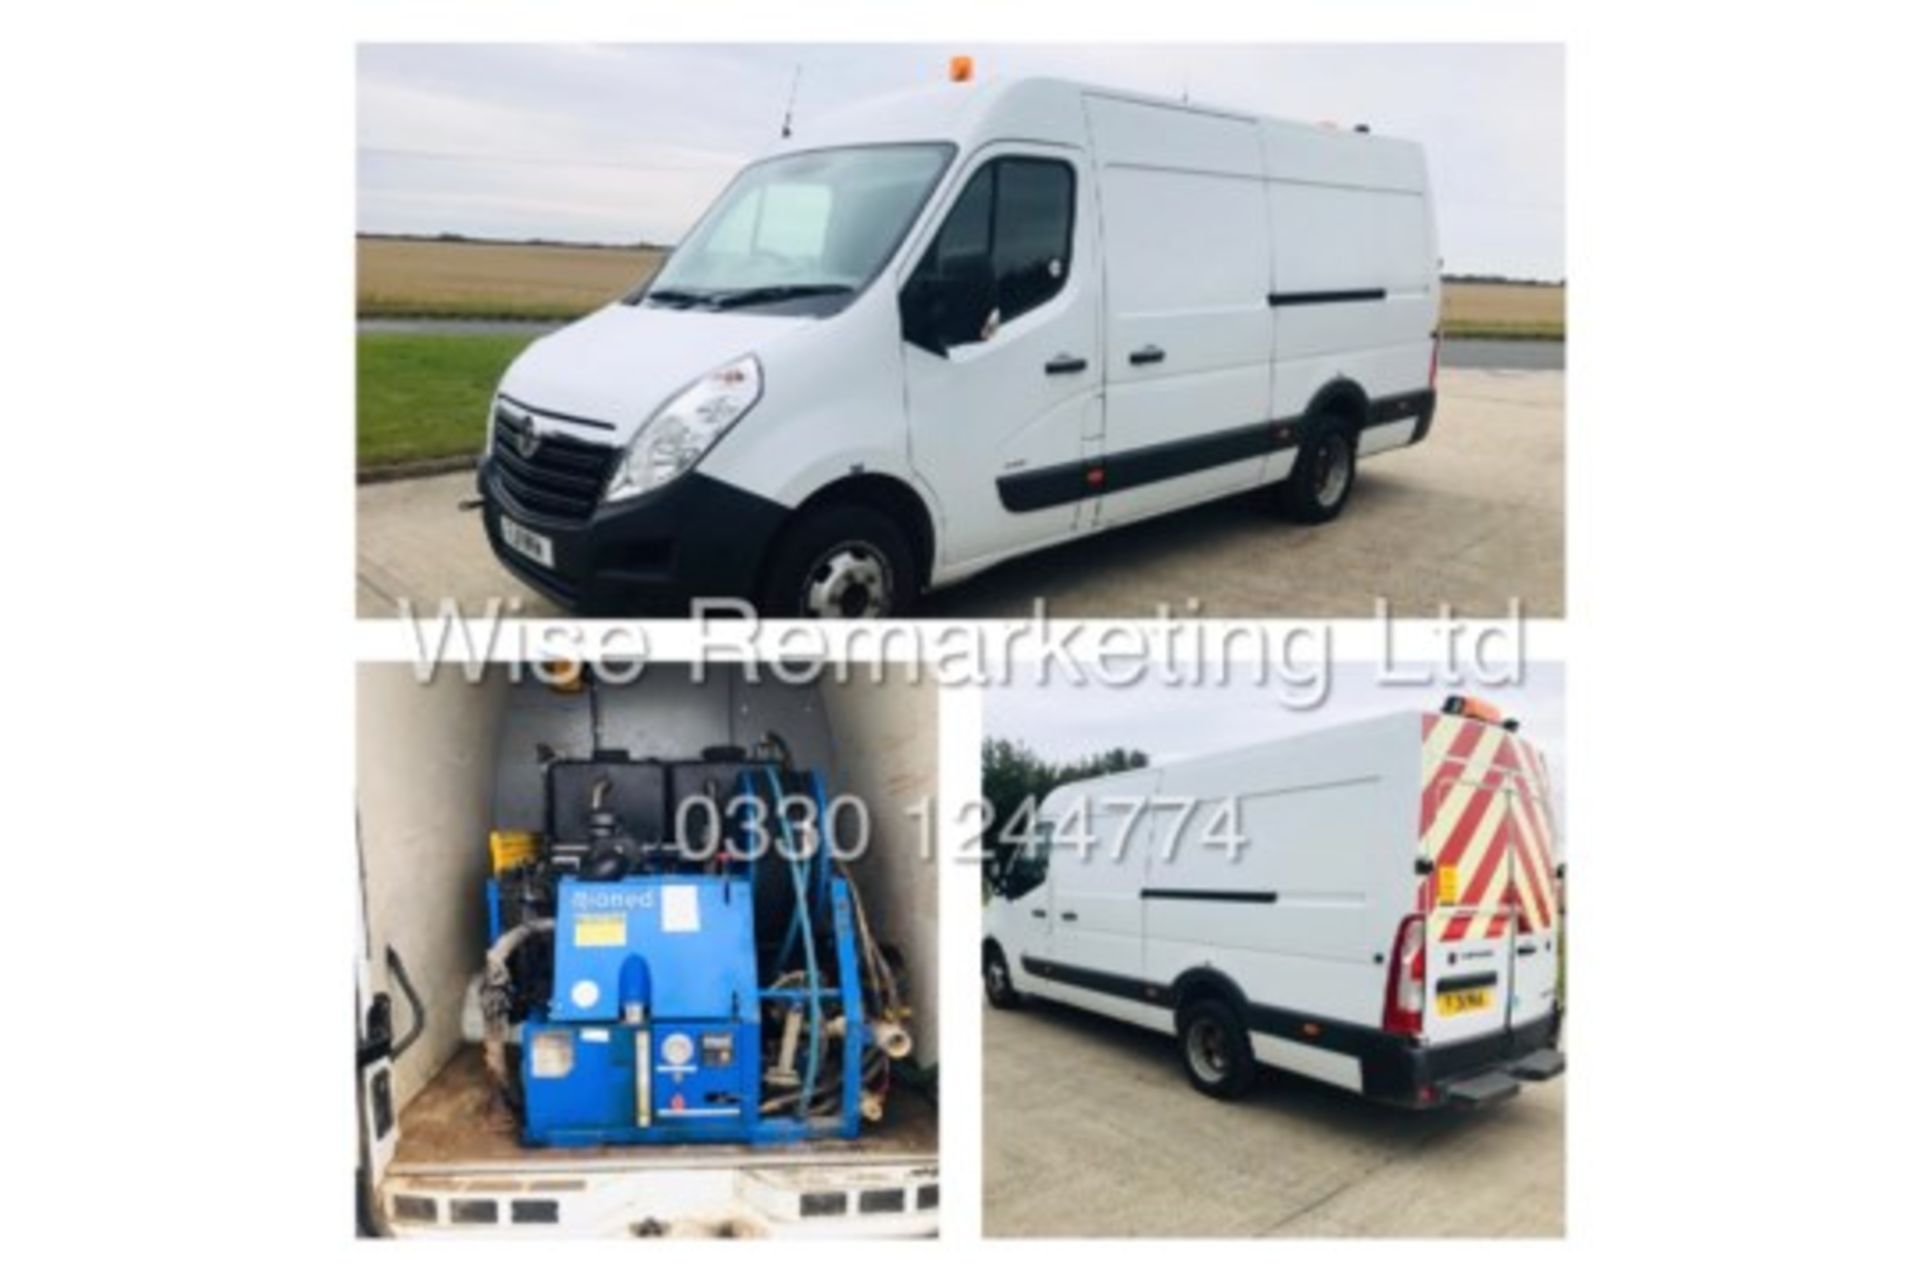 Lot 4 - ***RESERVE MET*** VAUXHALL MOVANO L3 H2 2.3 CDTI 11REG *VERY RARE RIONED HIGH PRESSURE JETTING UNIT